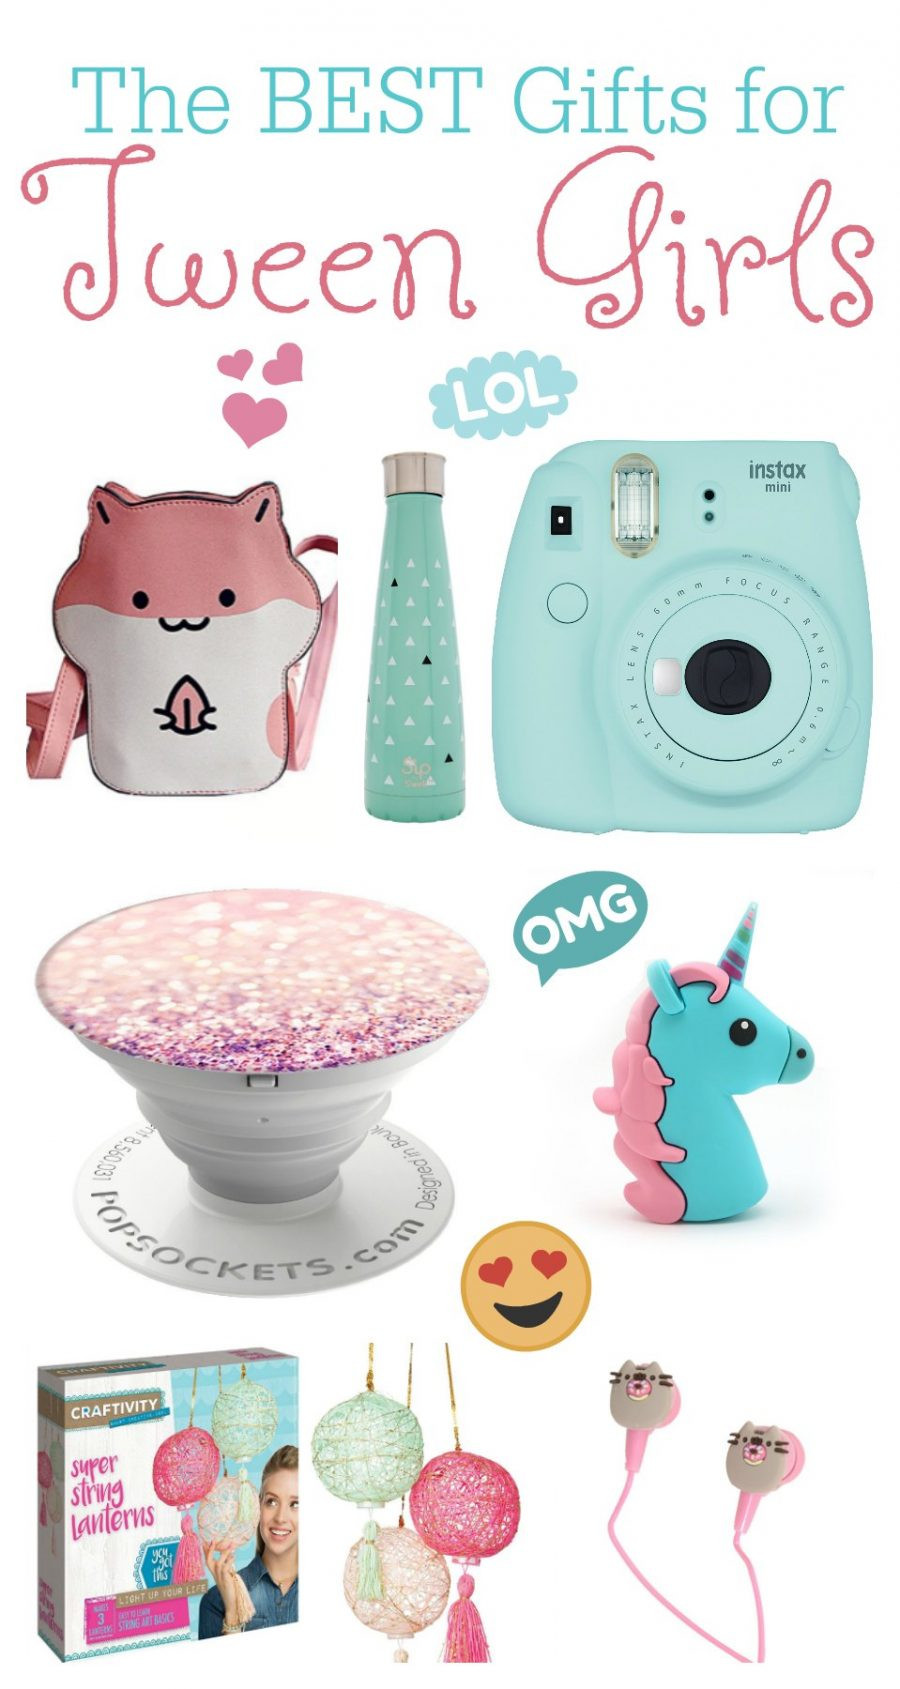 Best ideas about Gift Ideas For Tween Girls . Save or Pin The BEST Gift Ideas for Tween Girls Now.